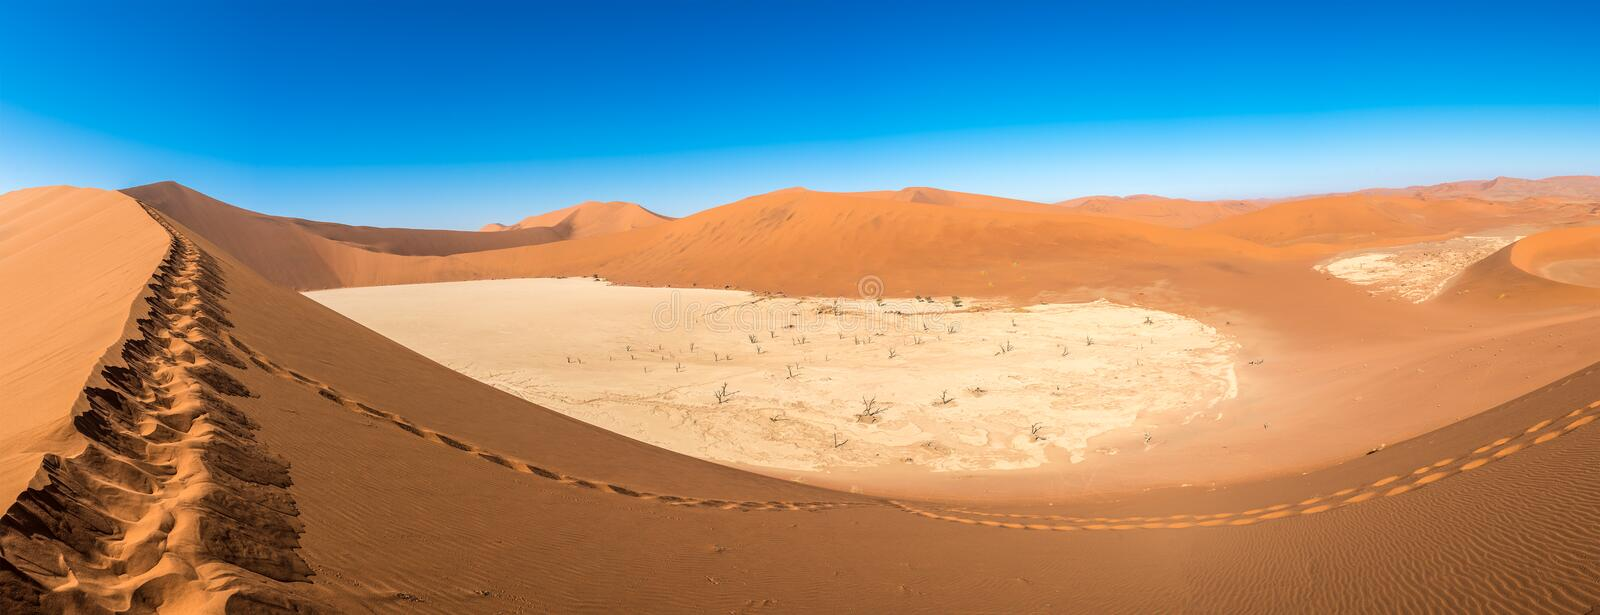 Panoramic view of sand dunes in Deadvlei, Sossusvlei, Namibia royalty free stock photos